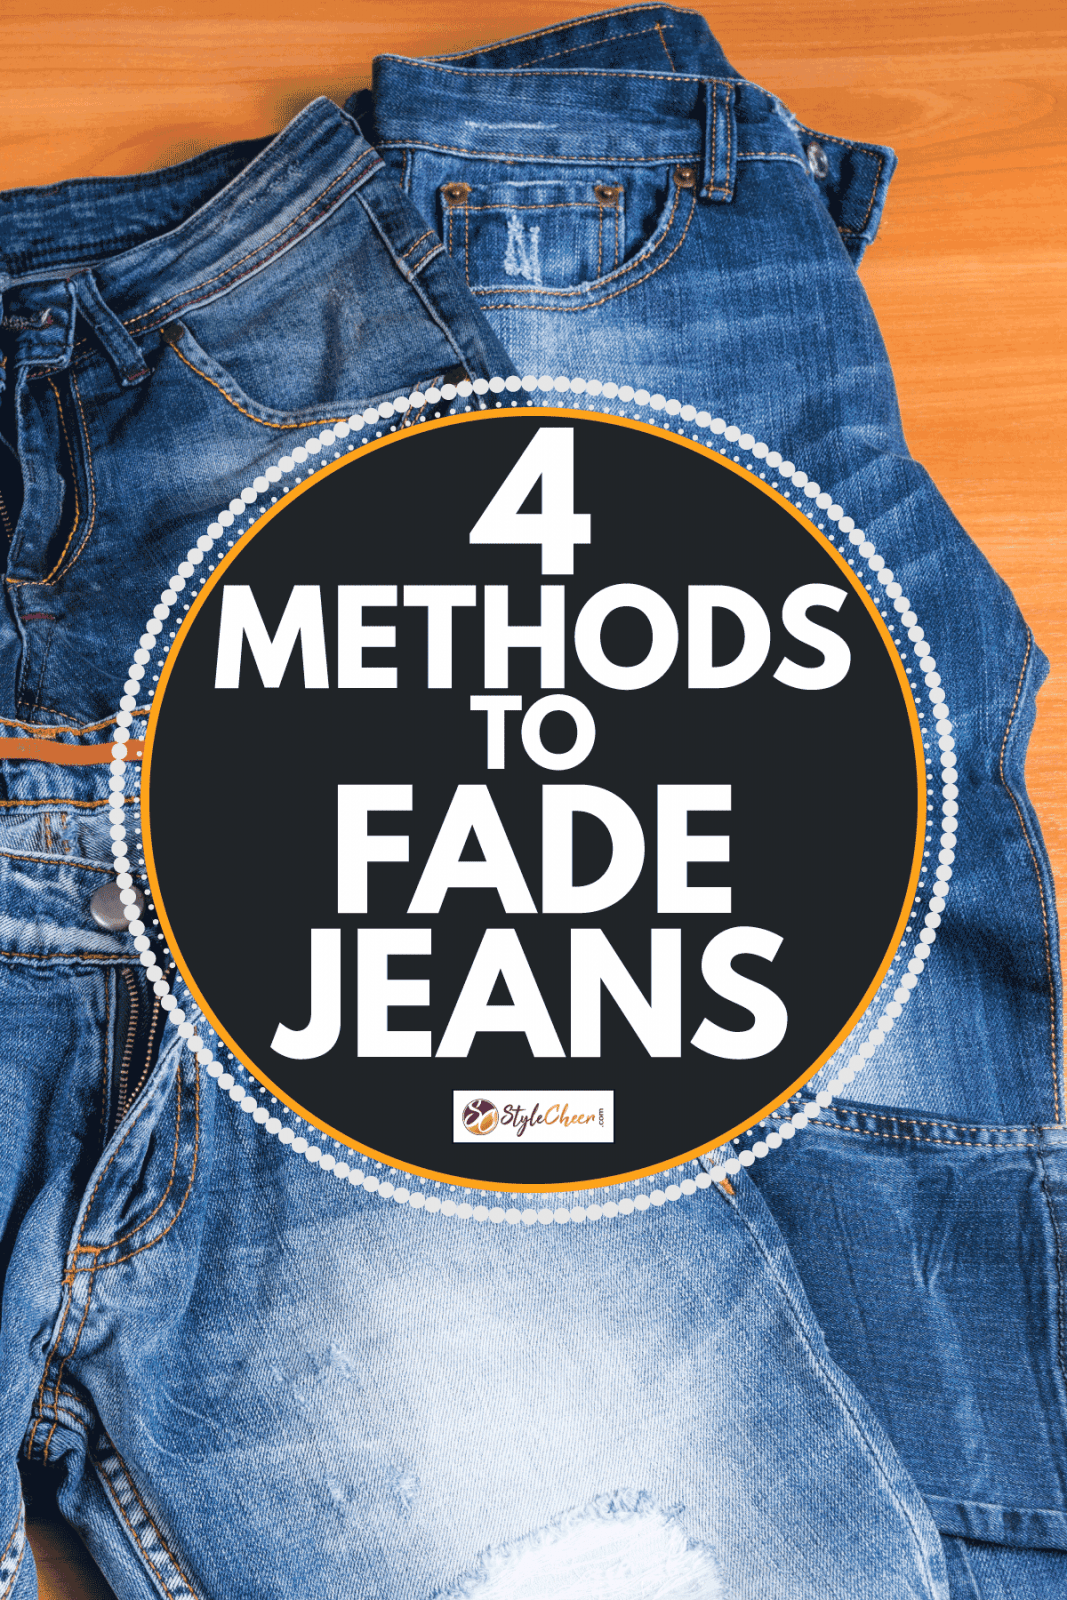 Pile of Blue Jeans in Various Washes and Styles. 4 Methods To Fade Jeans